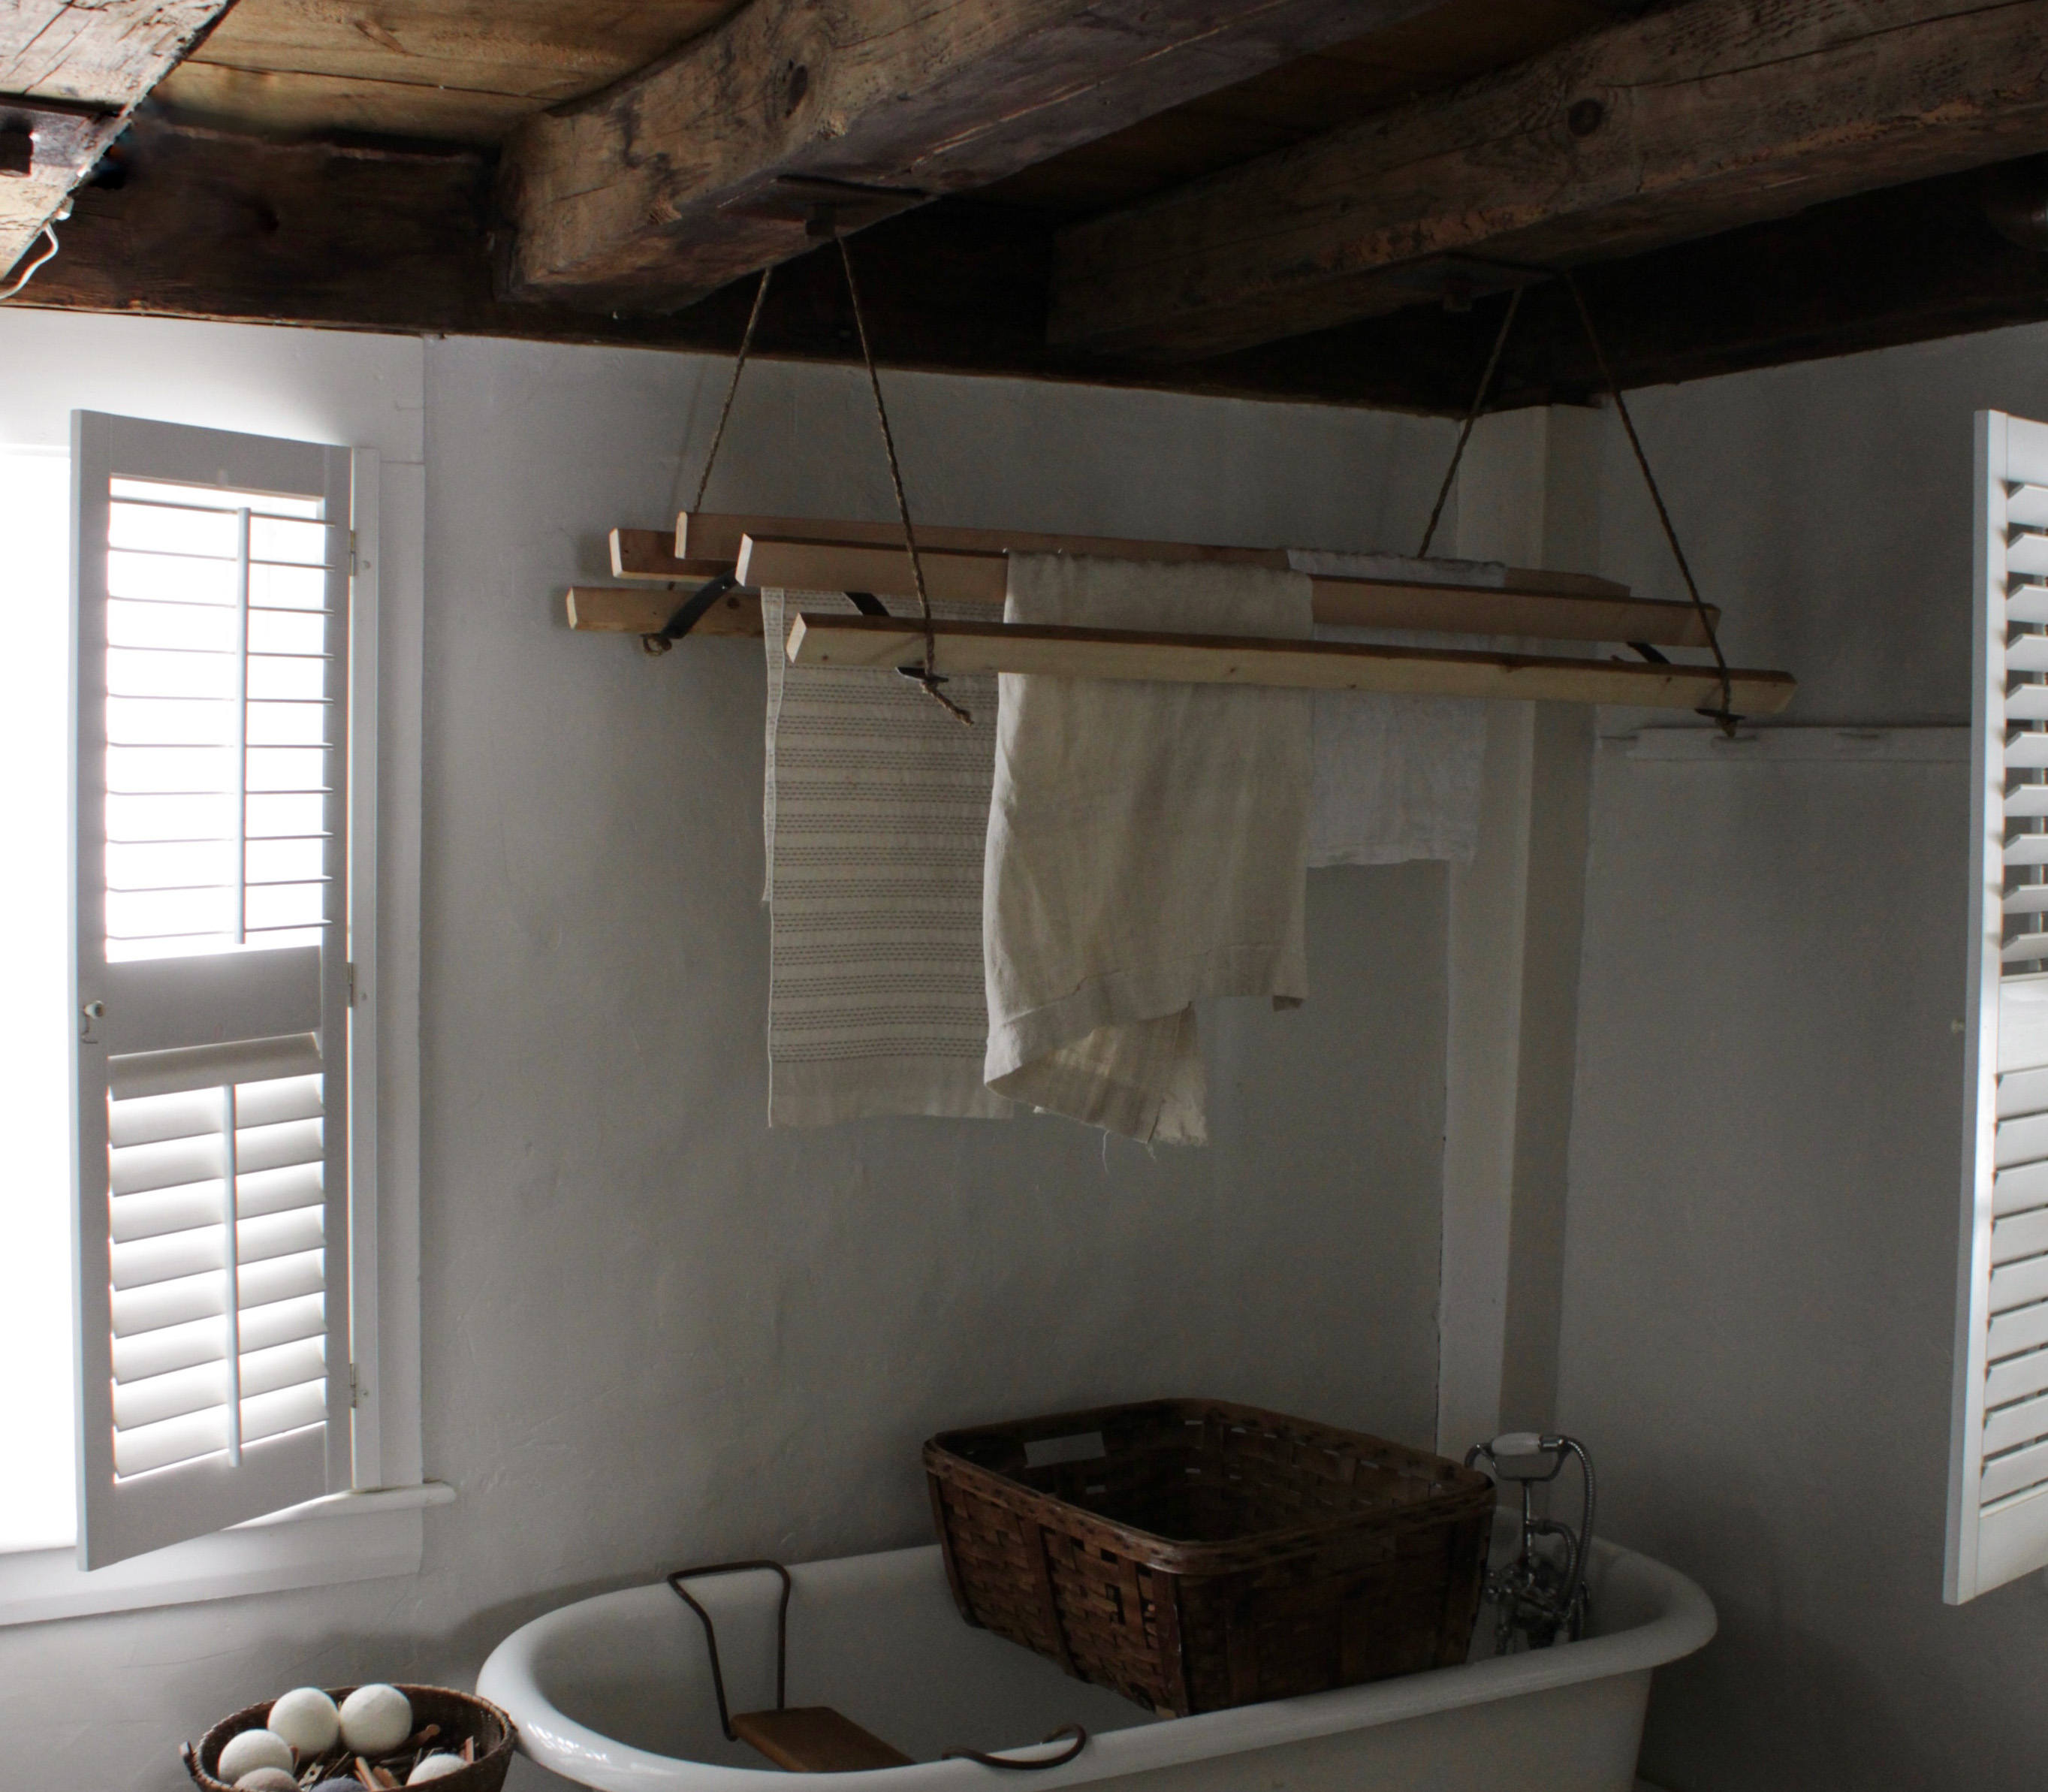 DIY: A Clothes-Drying Rack Made the Old-Fashioned Way on a Maine Farm - Remodelista